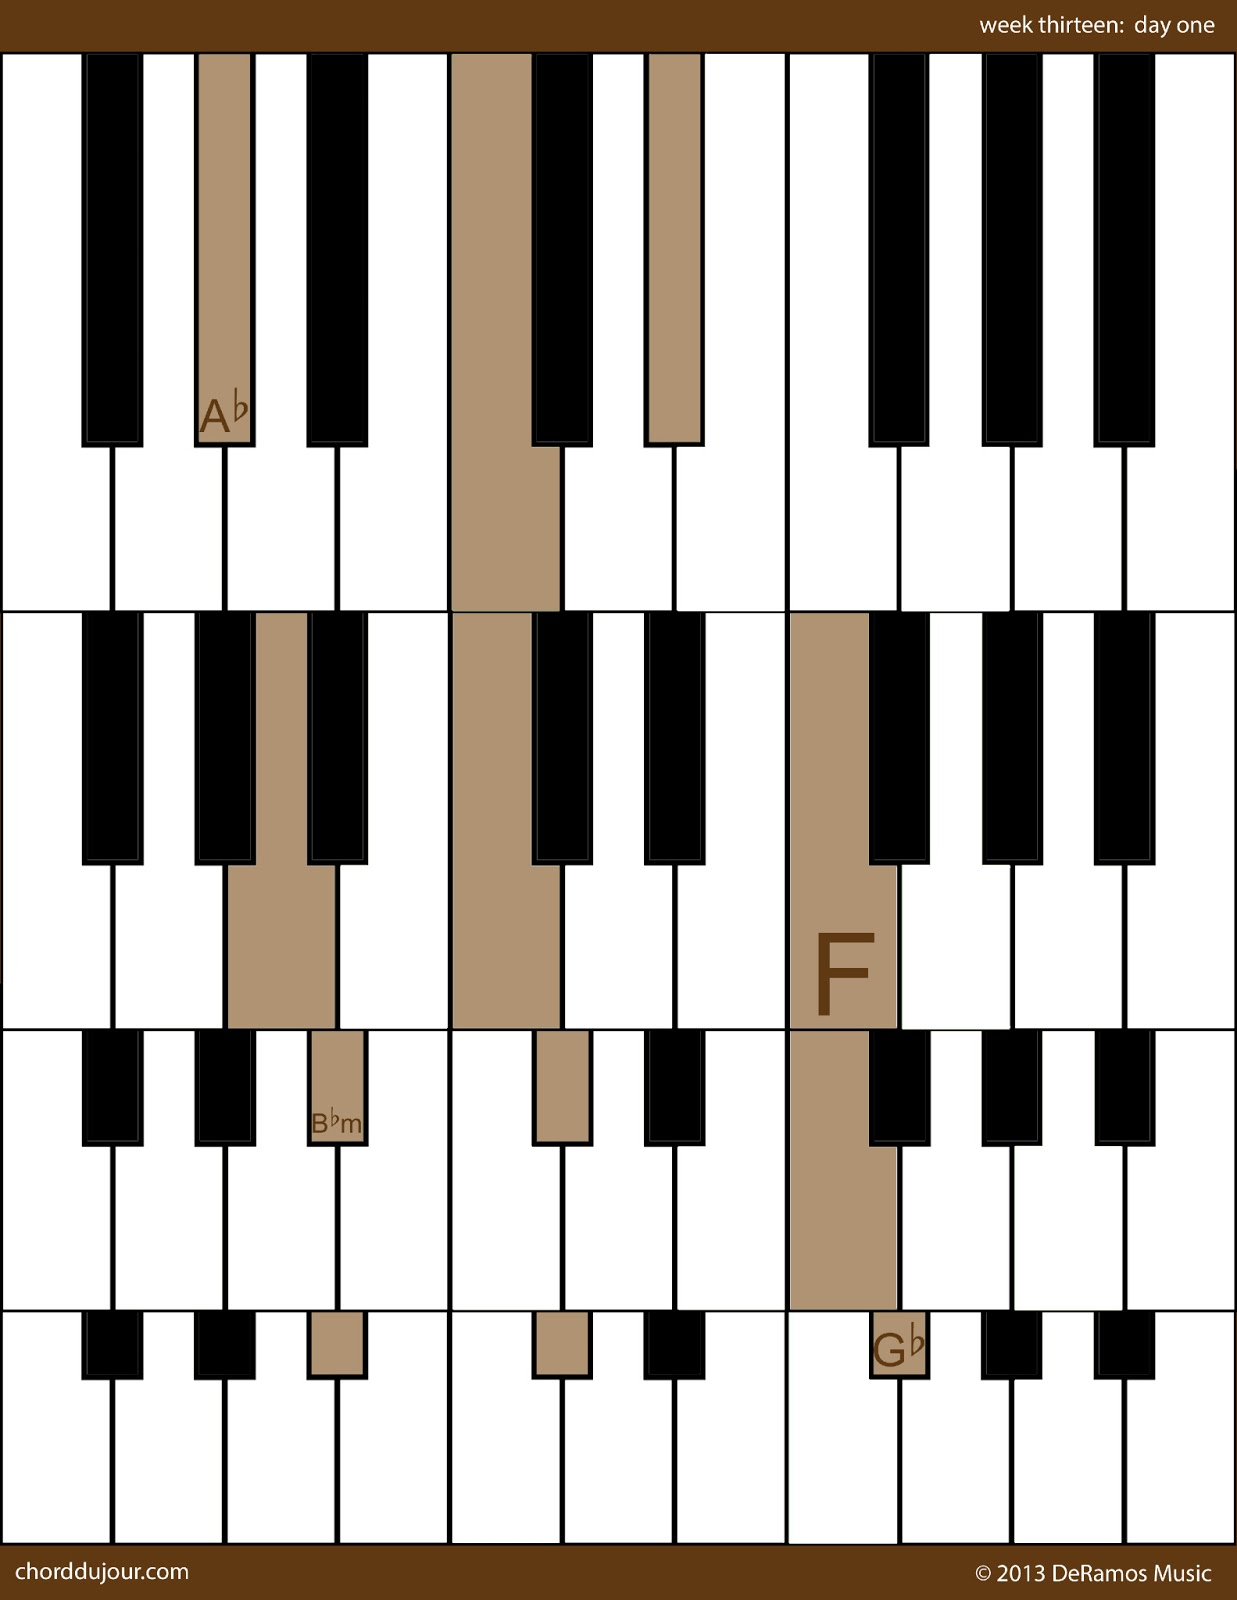 Chord du jour february 2013 seven modes with five flats for the fretboard four chords for the keyboard next weeks facebook preview hexwebz Gallery